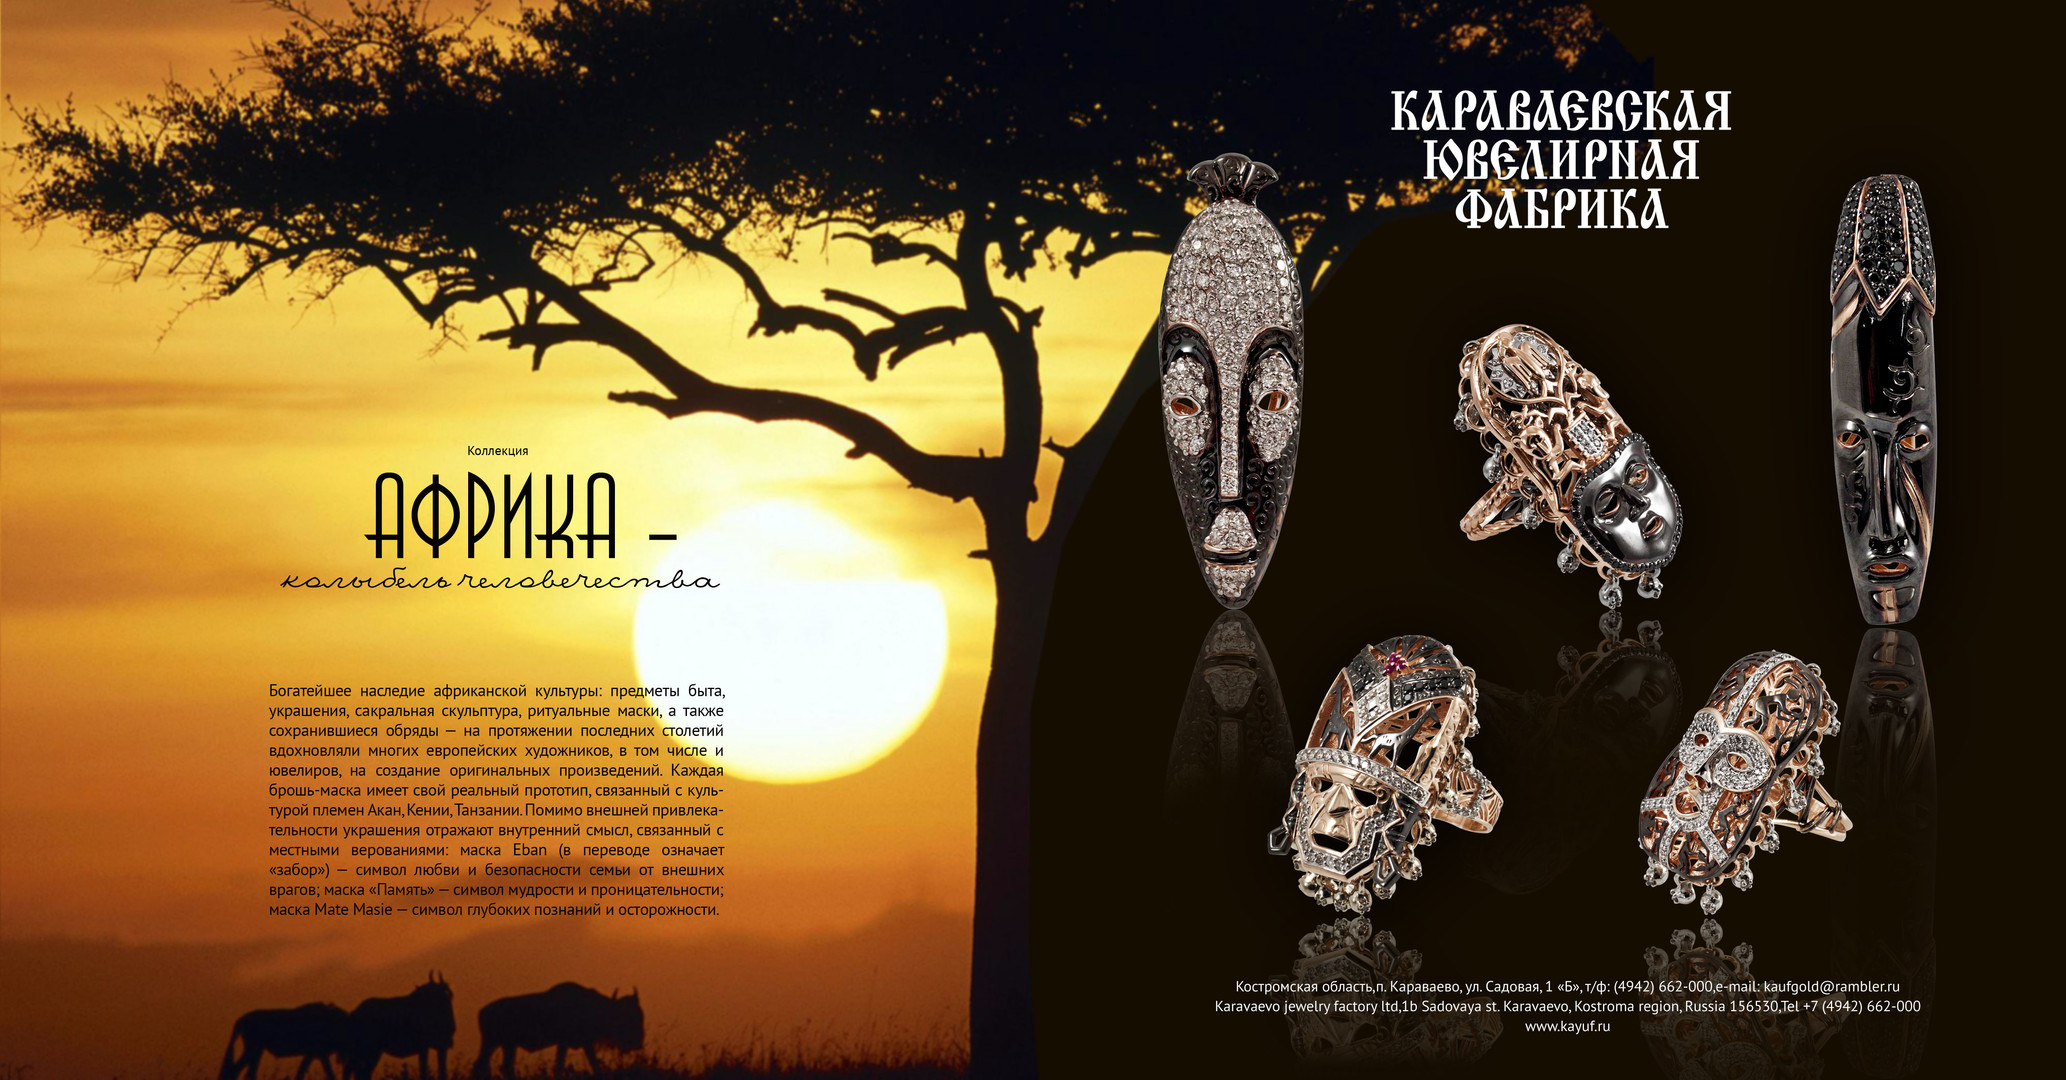 Collection Africa-the cradle of humanity